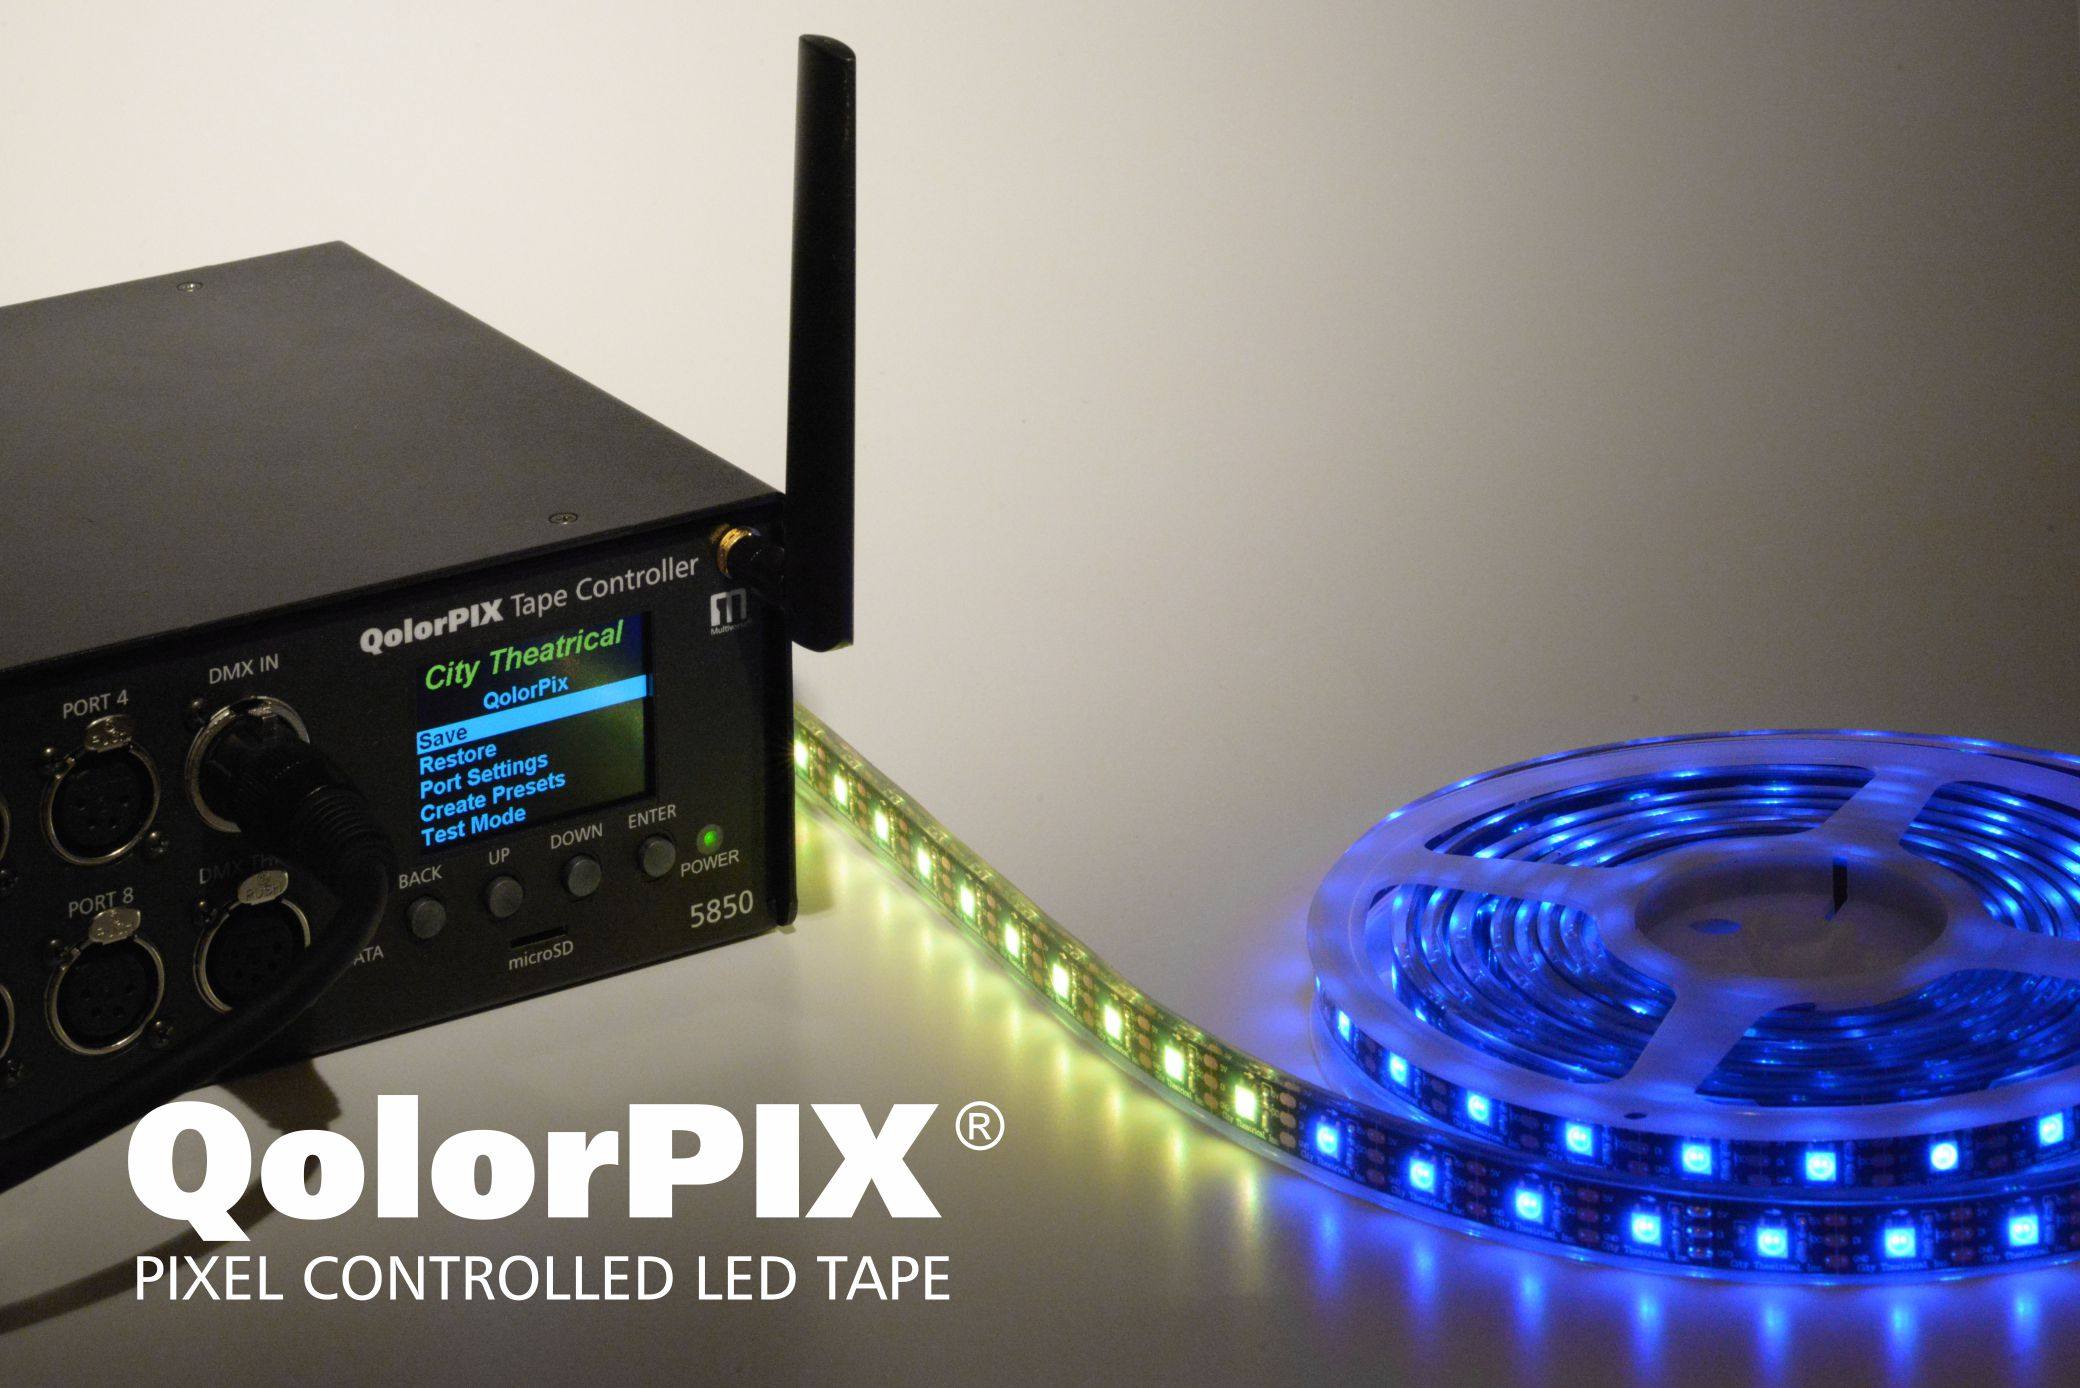 QolorPIX Tape Controller and QolorPIX Pixel Controlled LED Tape